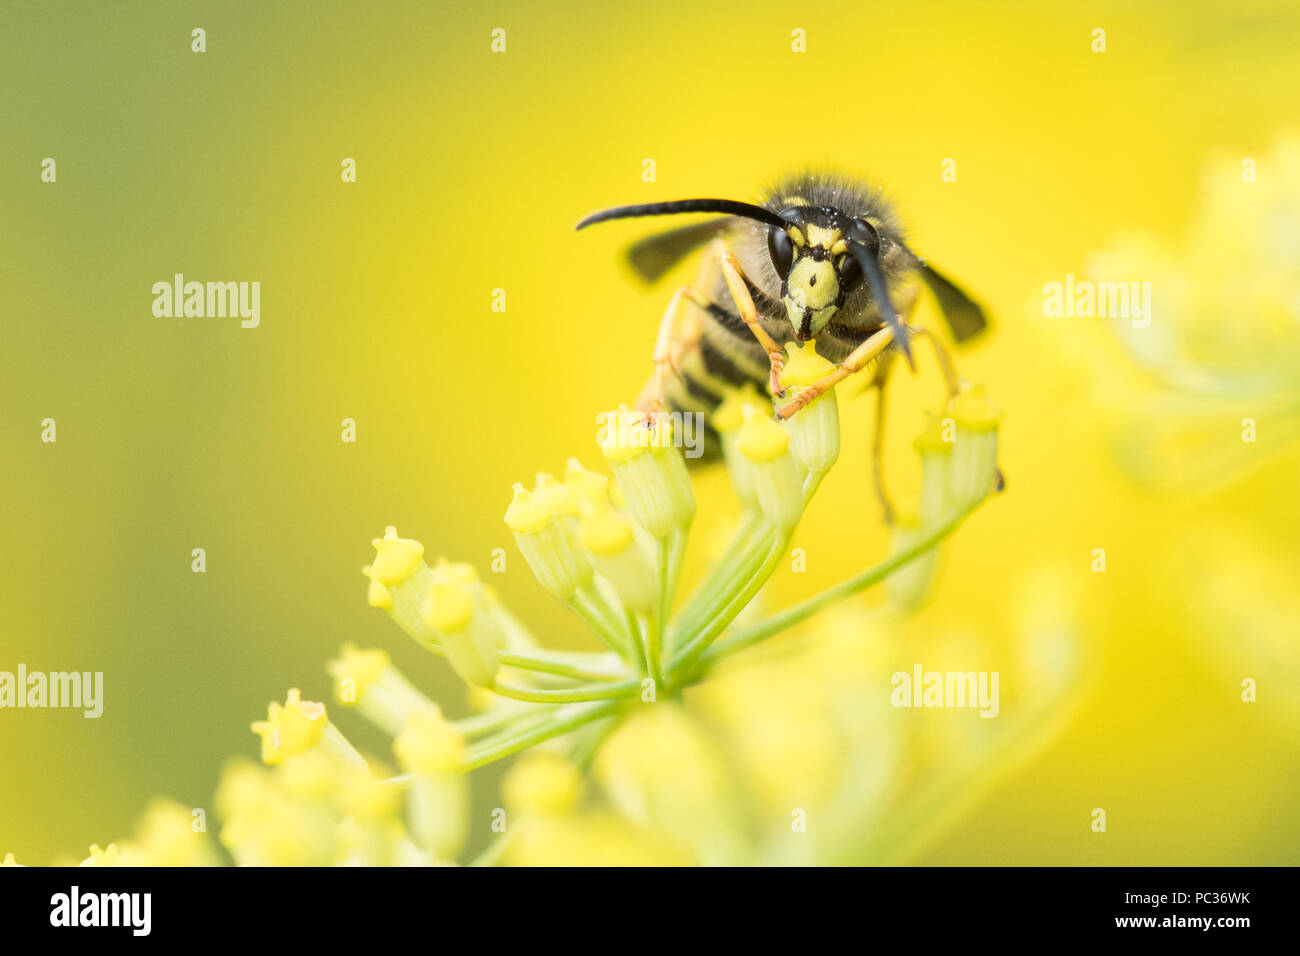 Wasp - tree wasp (Dolichovespula sylvestris) on fennel plant - UK - Stock Image